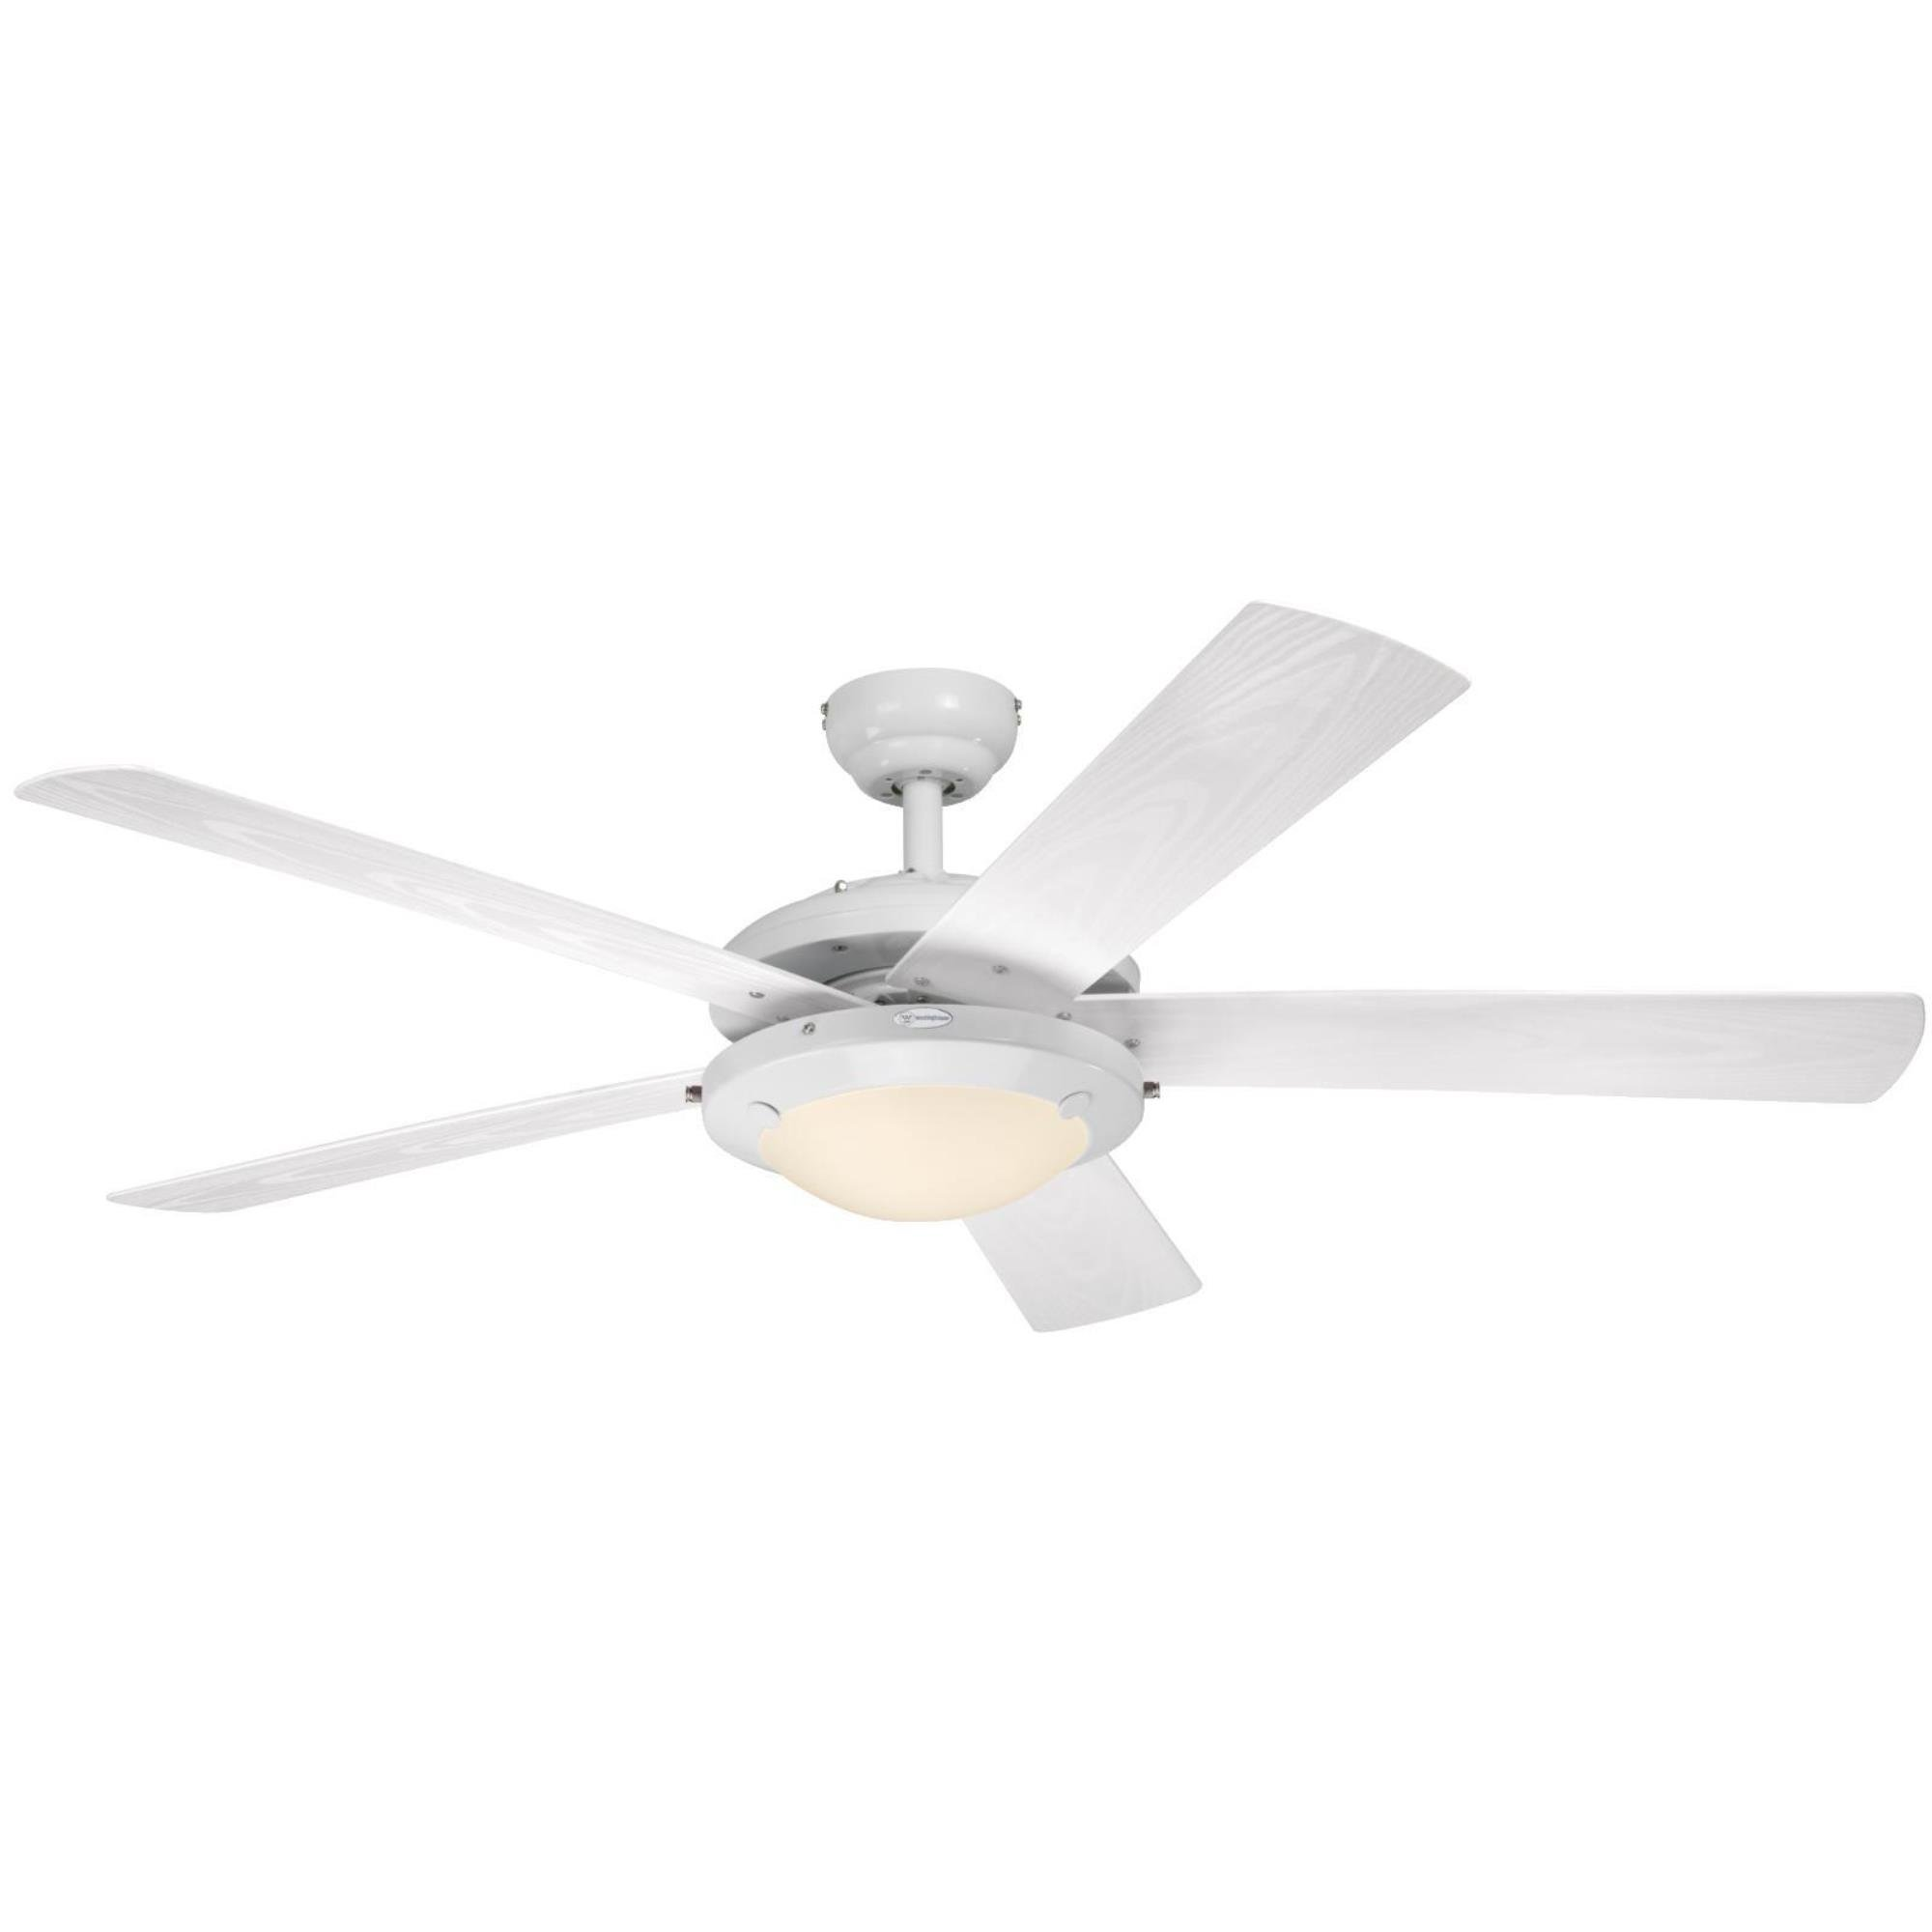 Westinghouse 7200800 Comet 52-Inch White Indoor/Outdoor Ceiling Fan, Light Kit with Frosted Glass